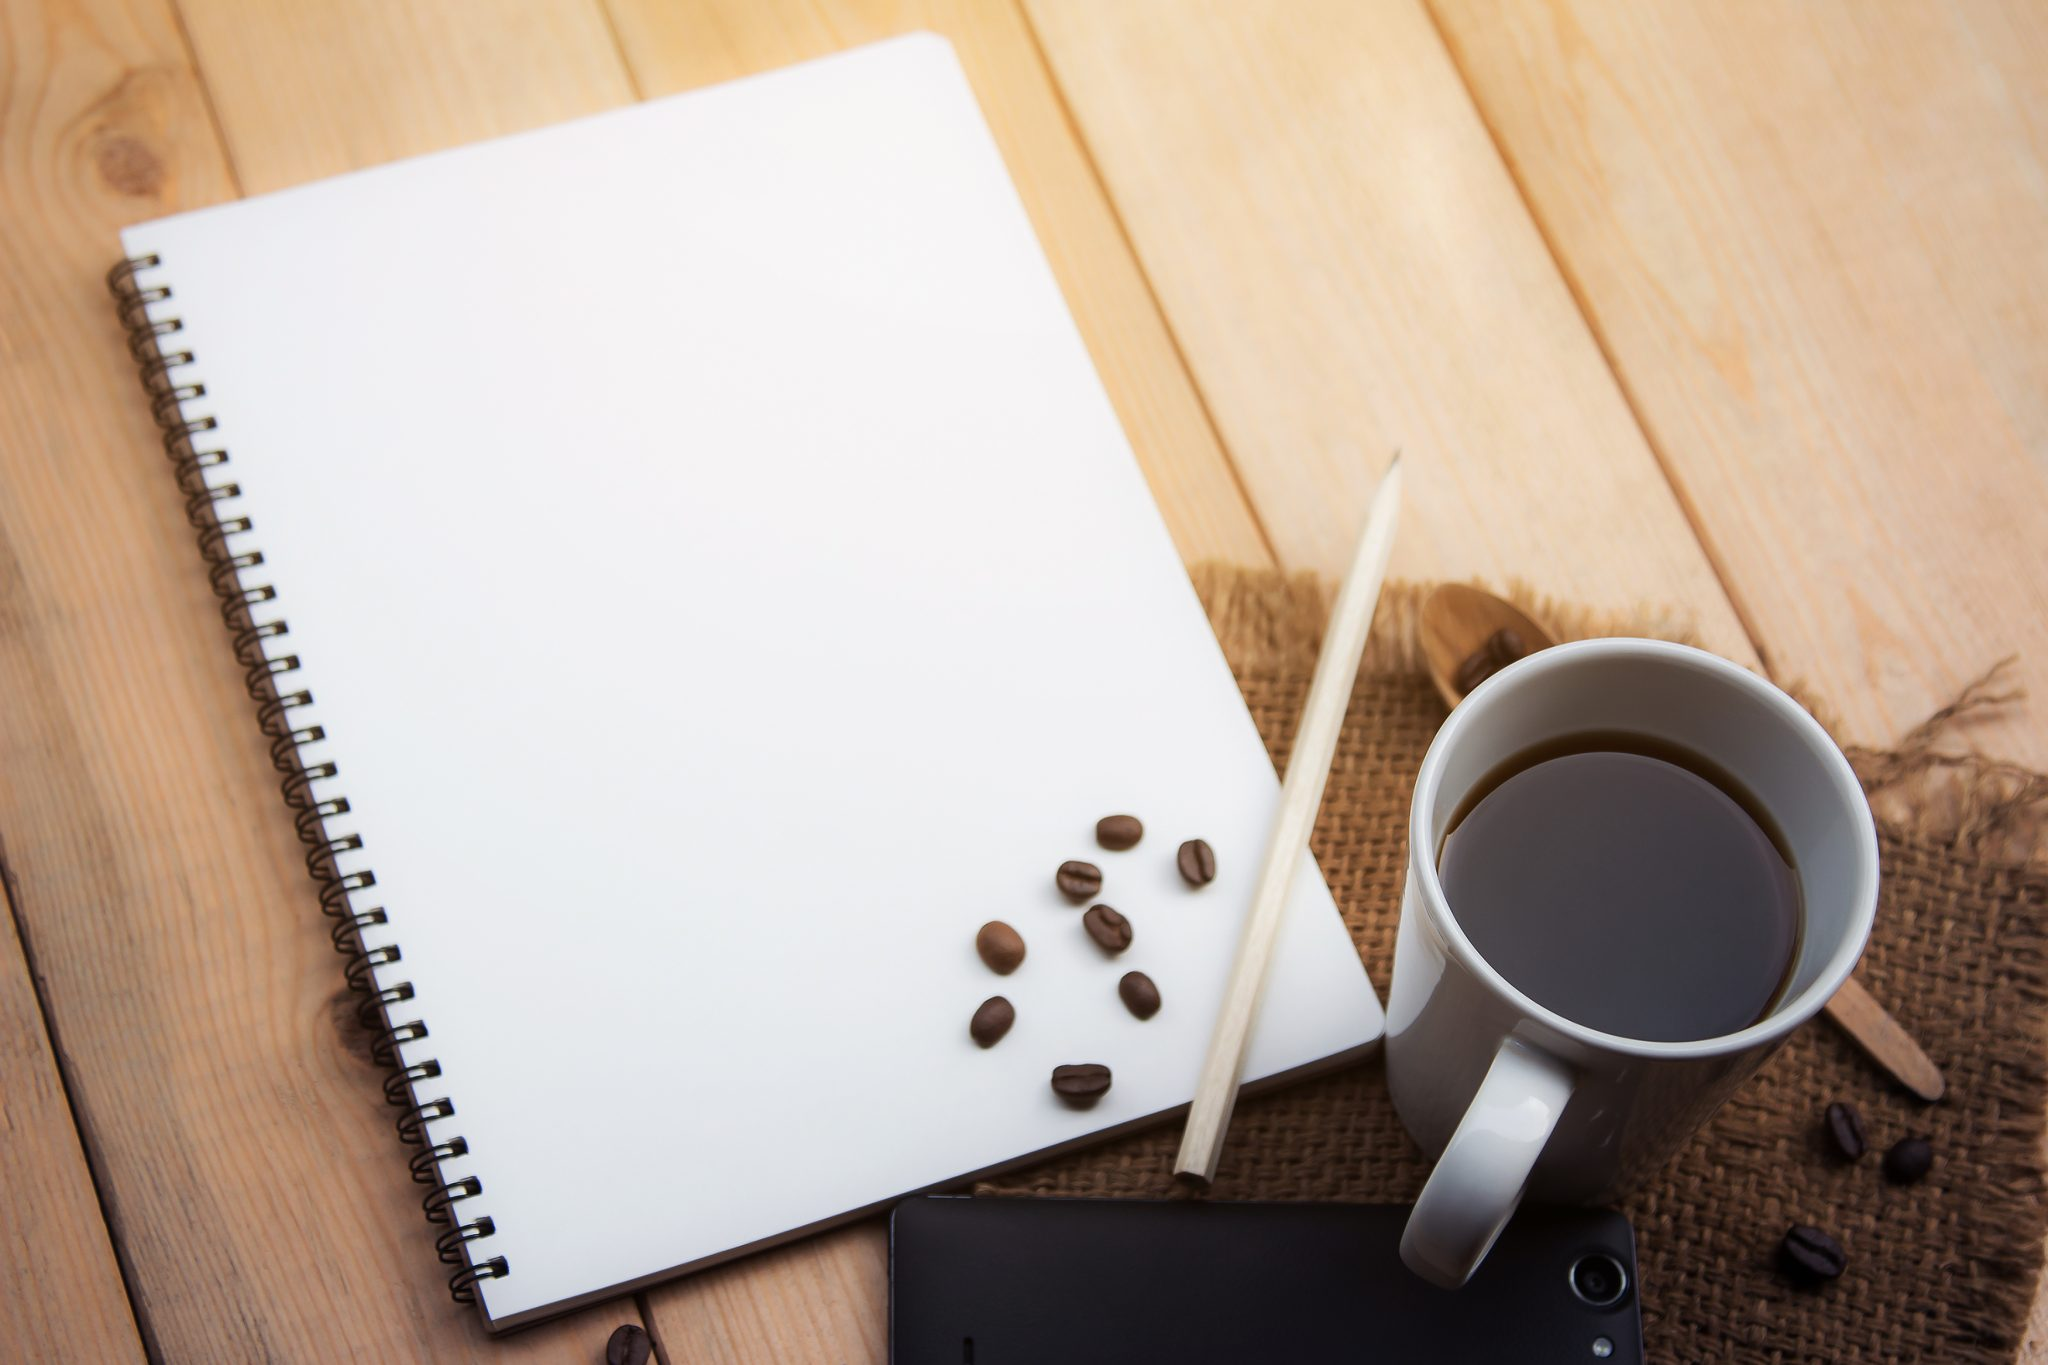 6 Simple Morning Productivity Tips to Start Your Day Off Right